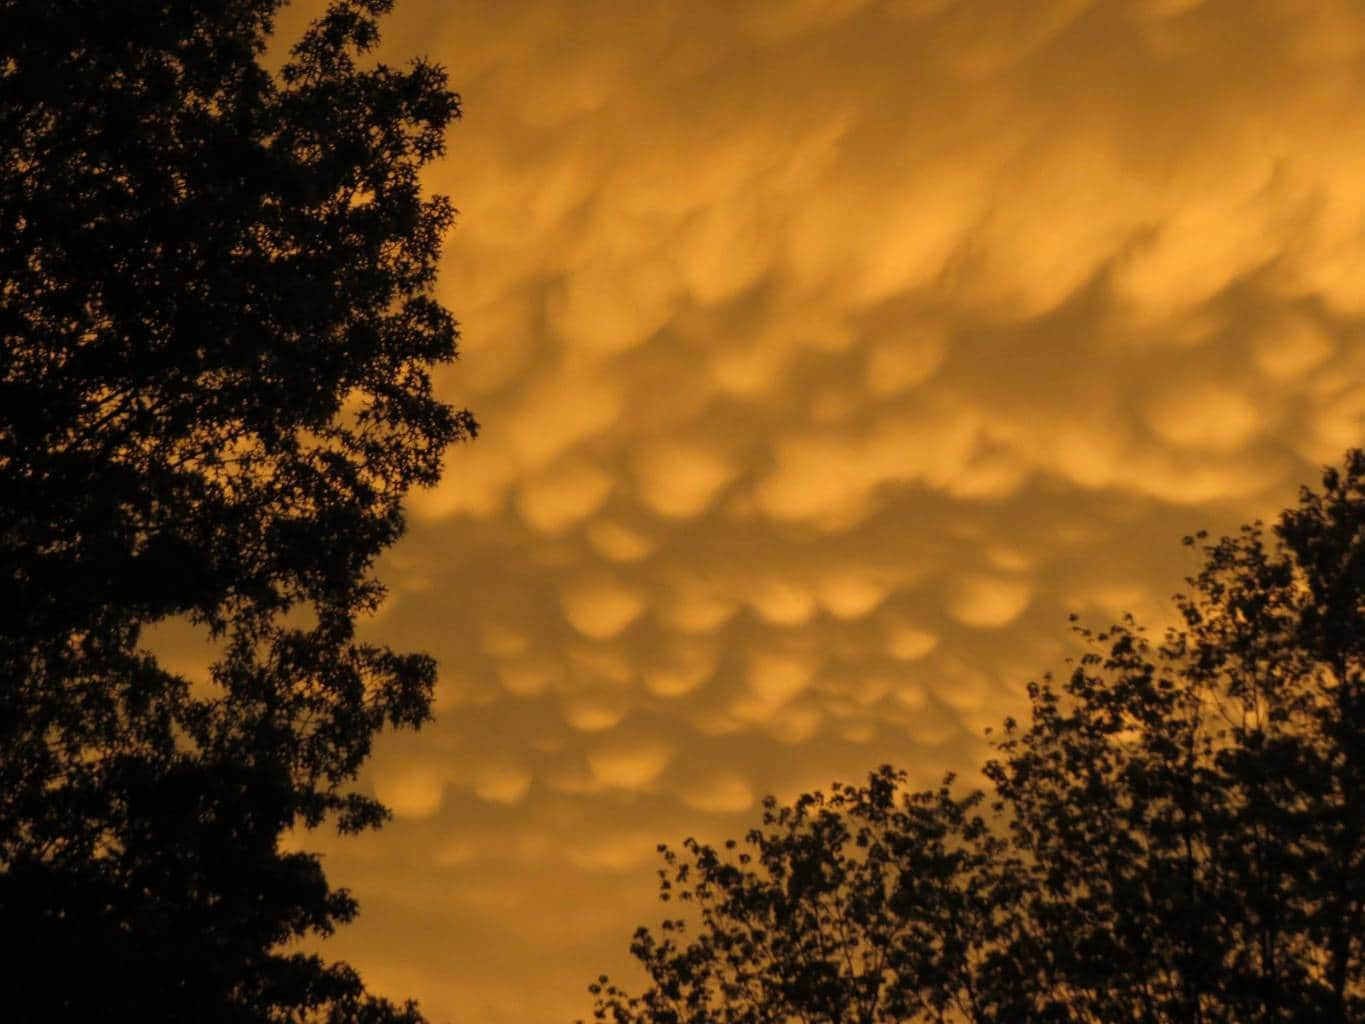 I finally was able to witness this cloud type smile emoticonMAMMATUS CLOUDS at sunset yesterday 6.23.15 , BEL AIR MD...after severe storms rolled by